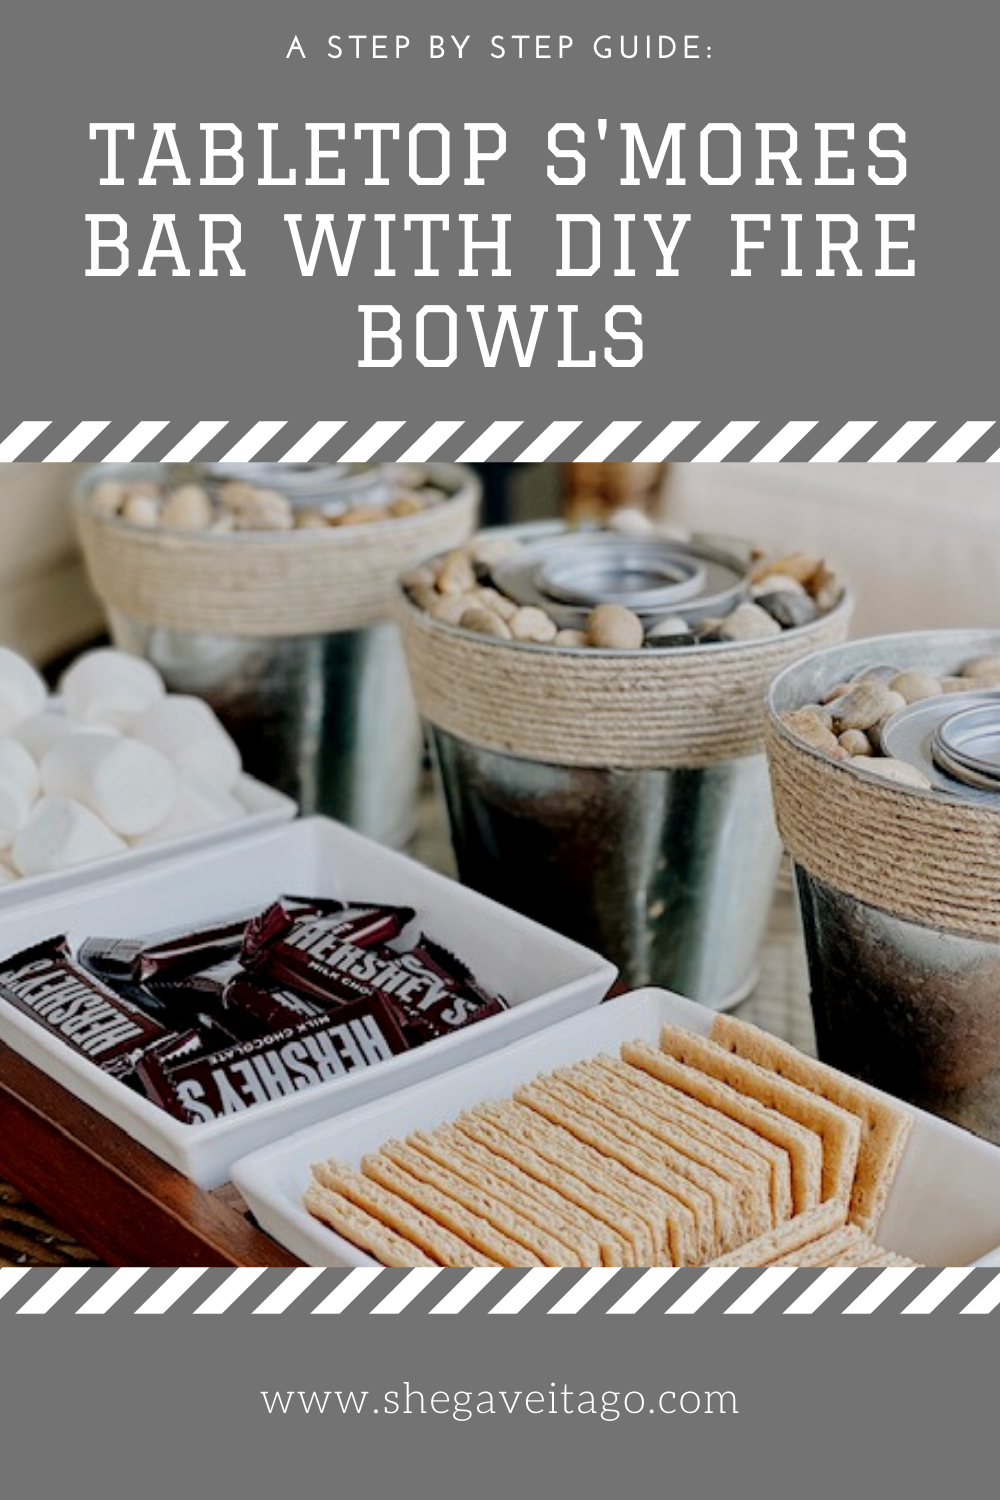 Tabletop S'mores With DIY Fire Bowls - She Gave It A Go